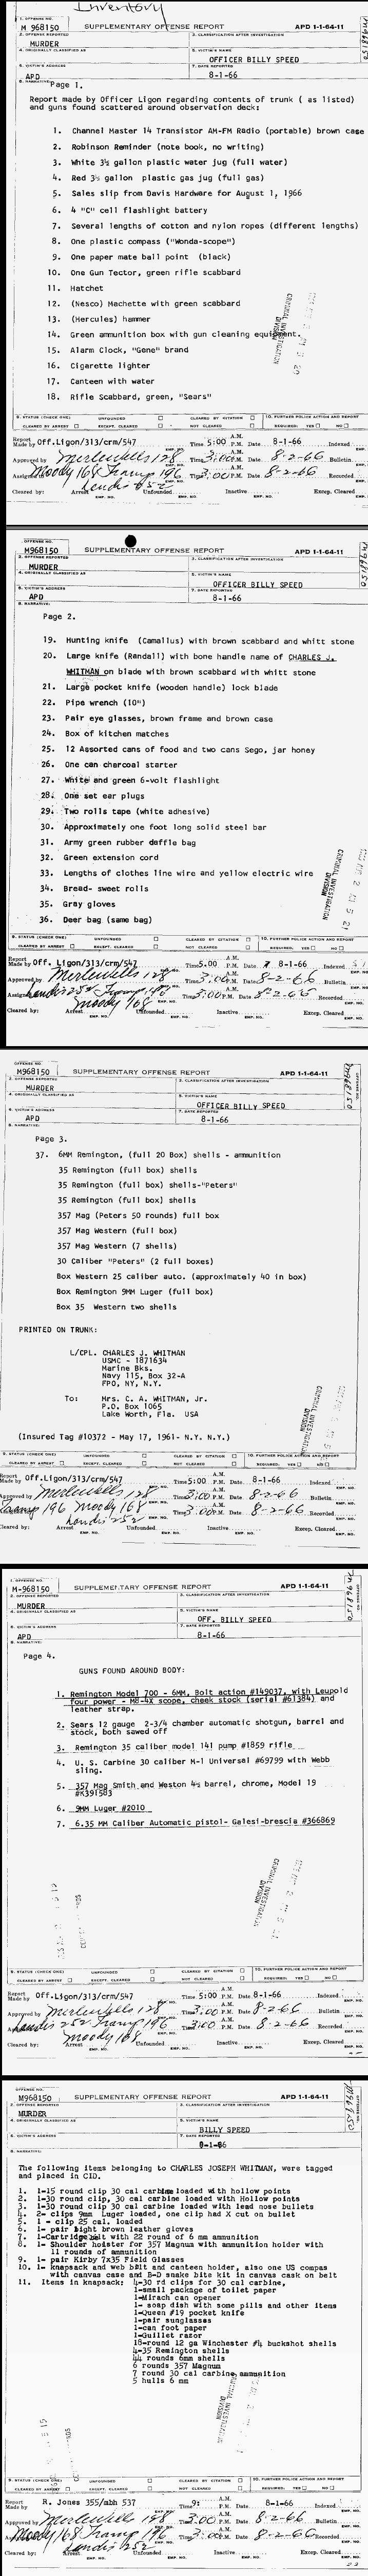 Table Of Contents Born august 30, 1982 (springfield, oregon). table of contents